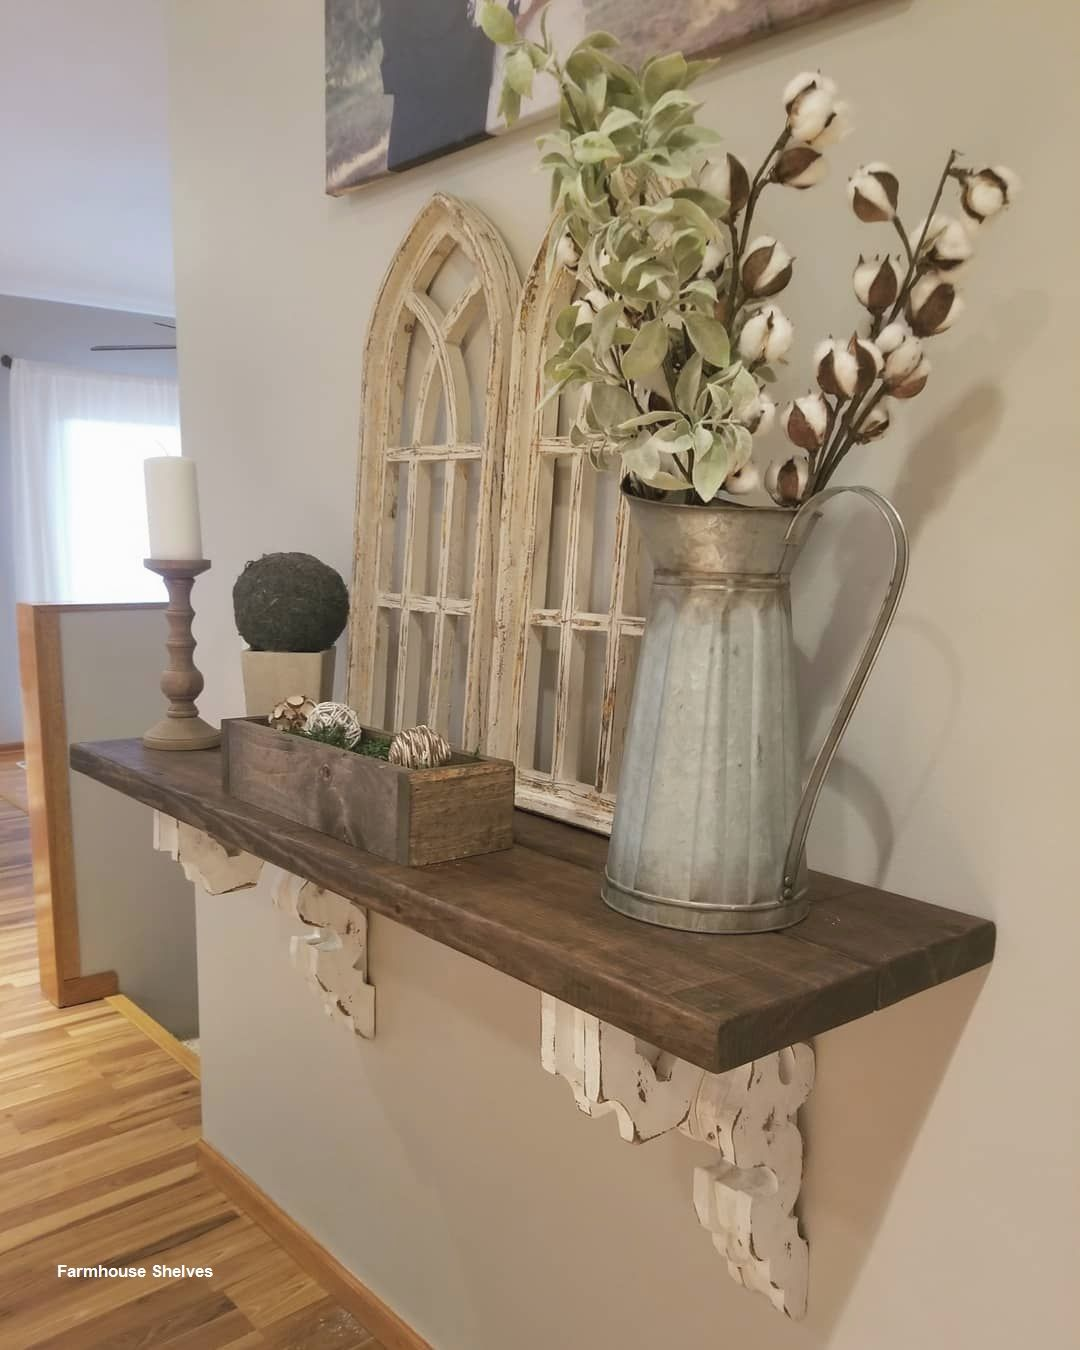 The Nicest And Cleverest Diy Floating Shelving Idea And Its Multi-advantages - DIY Aspects